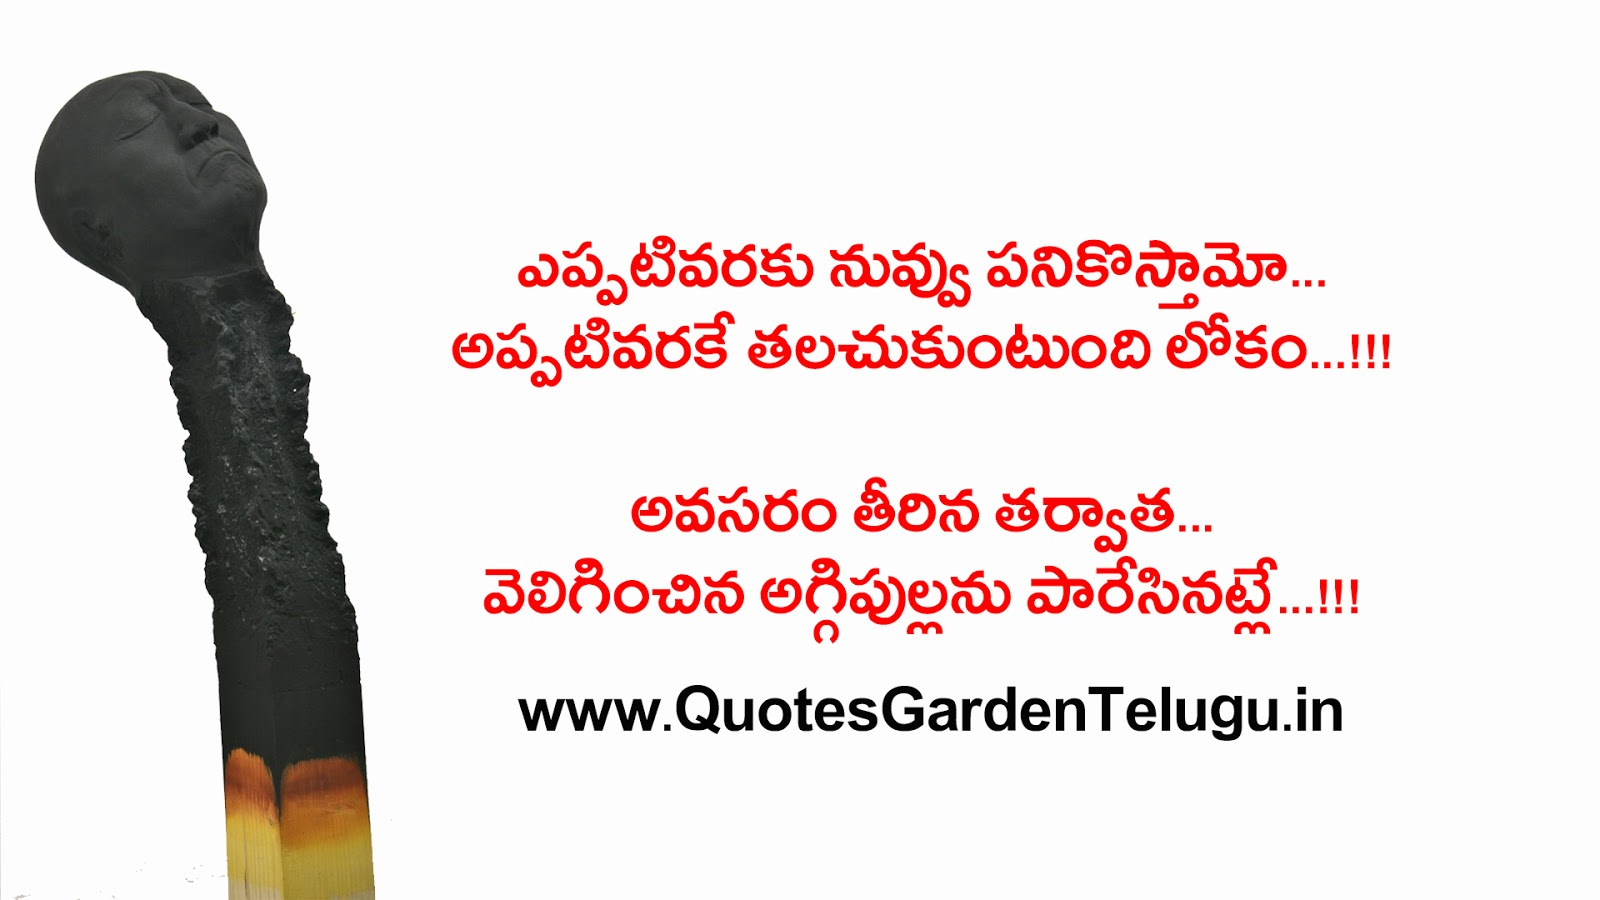 Latest Trending life quotes in telugu